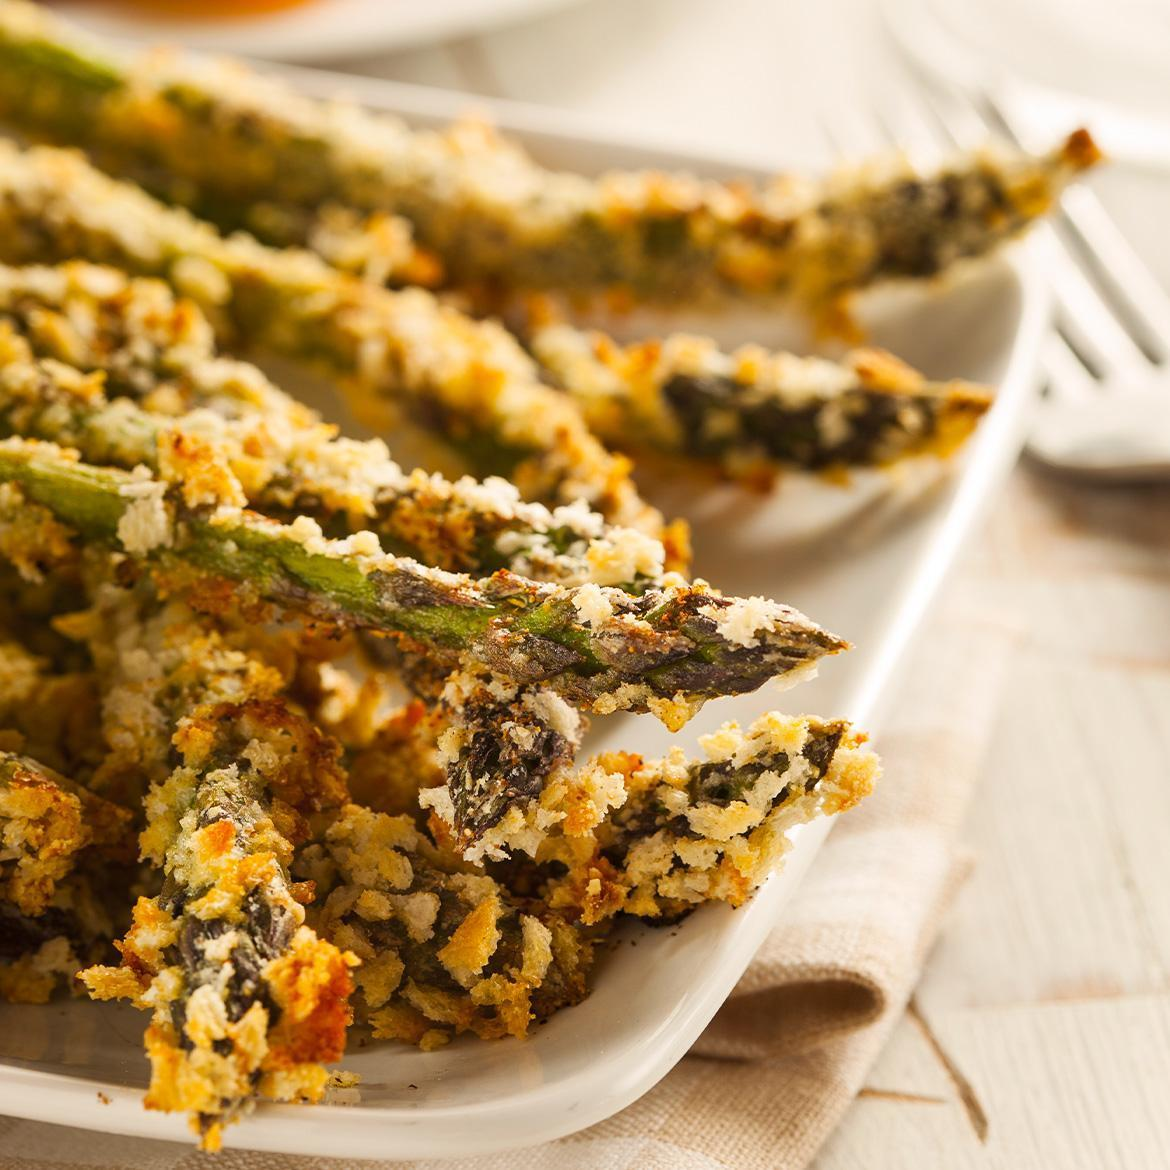 Asparagus tips breaded with almonds